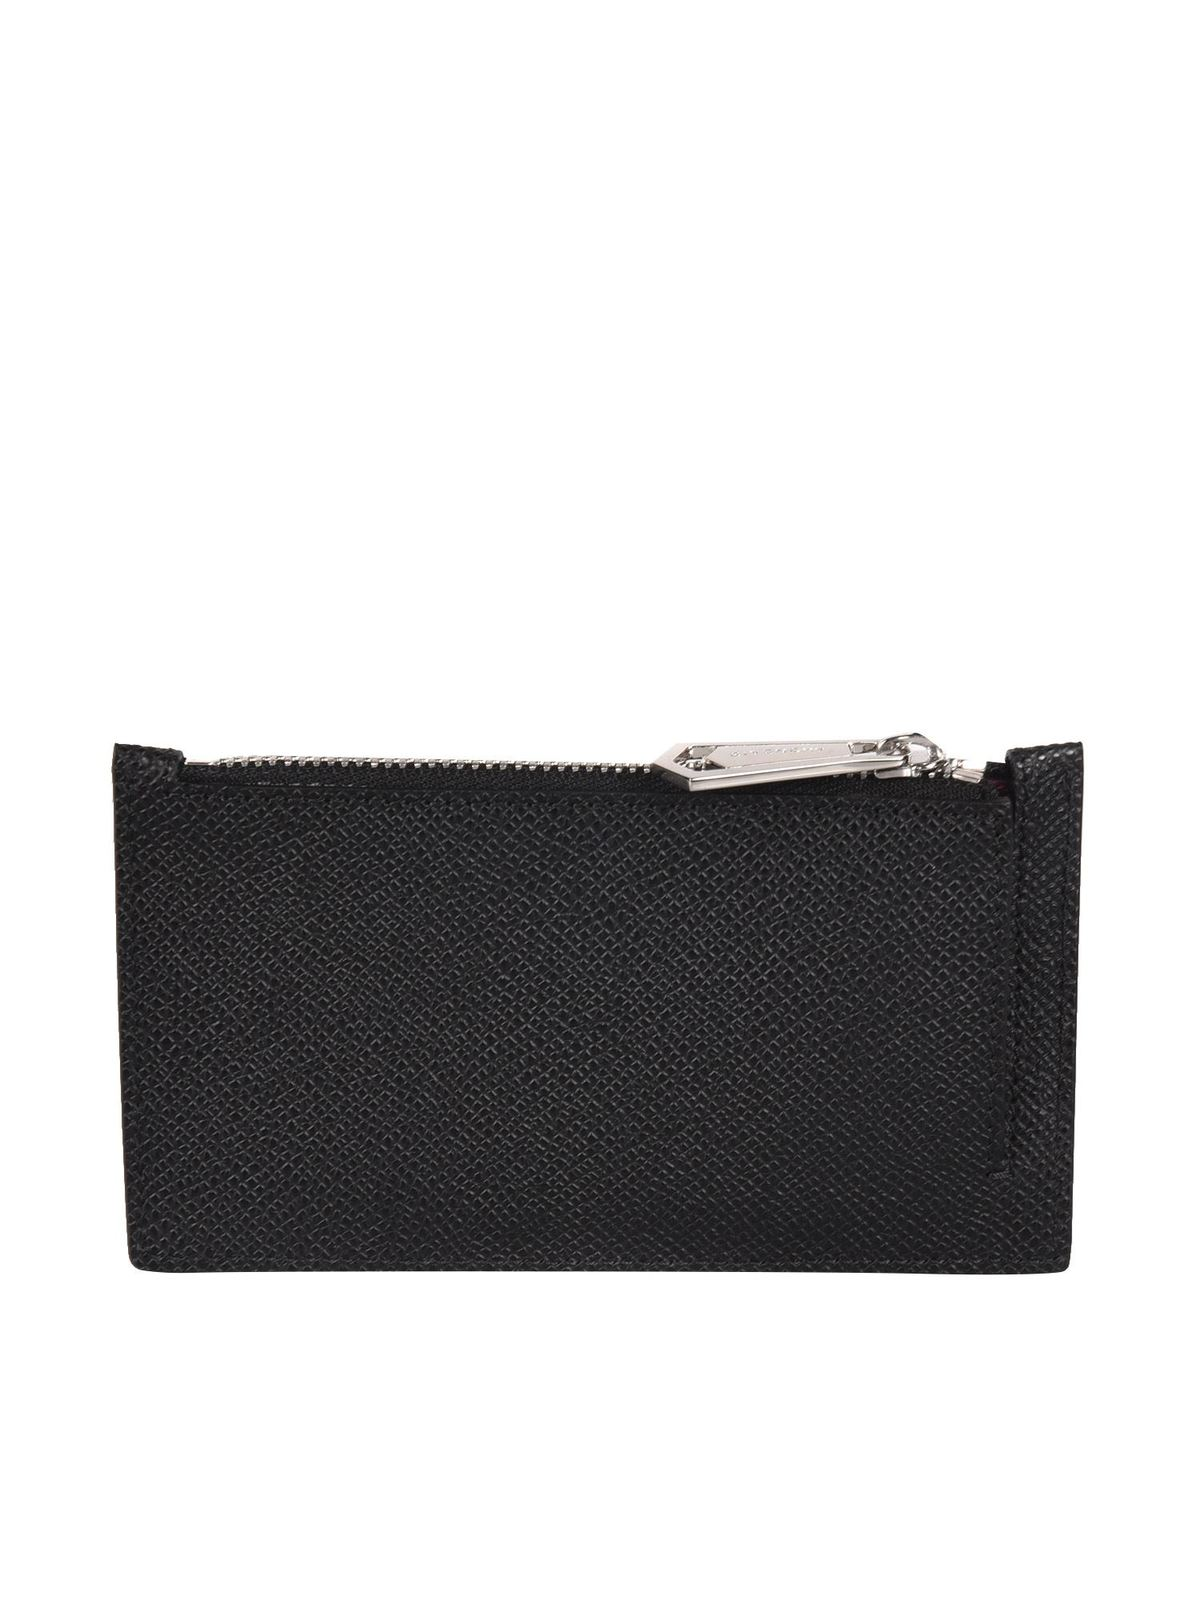 Givenchy ZIPPED CARD HOLDER IN BLACK